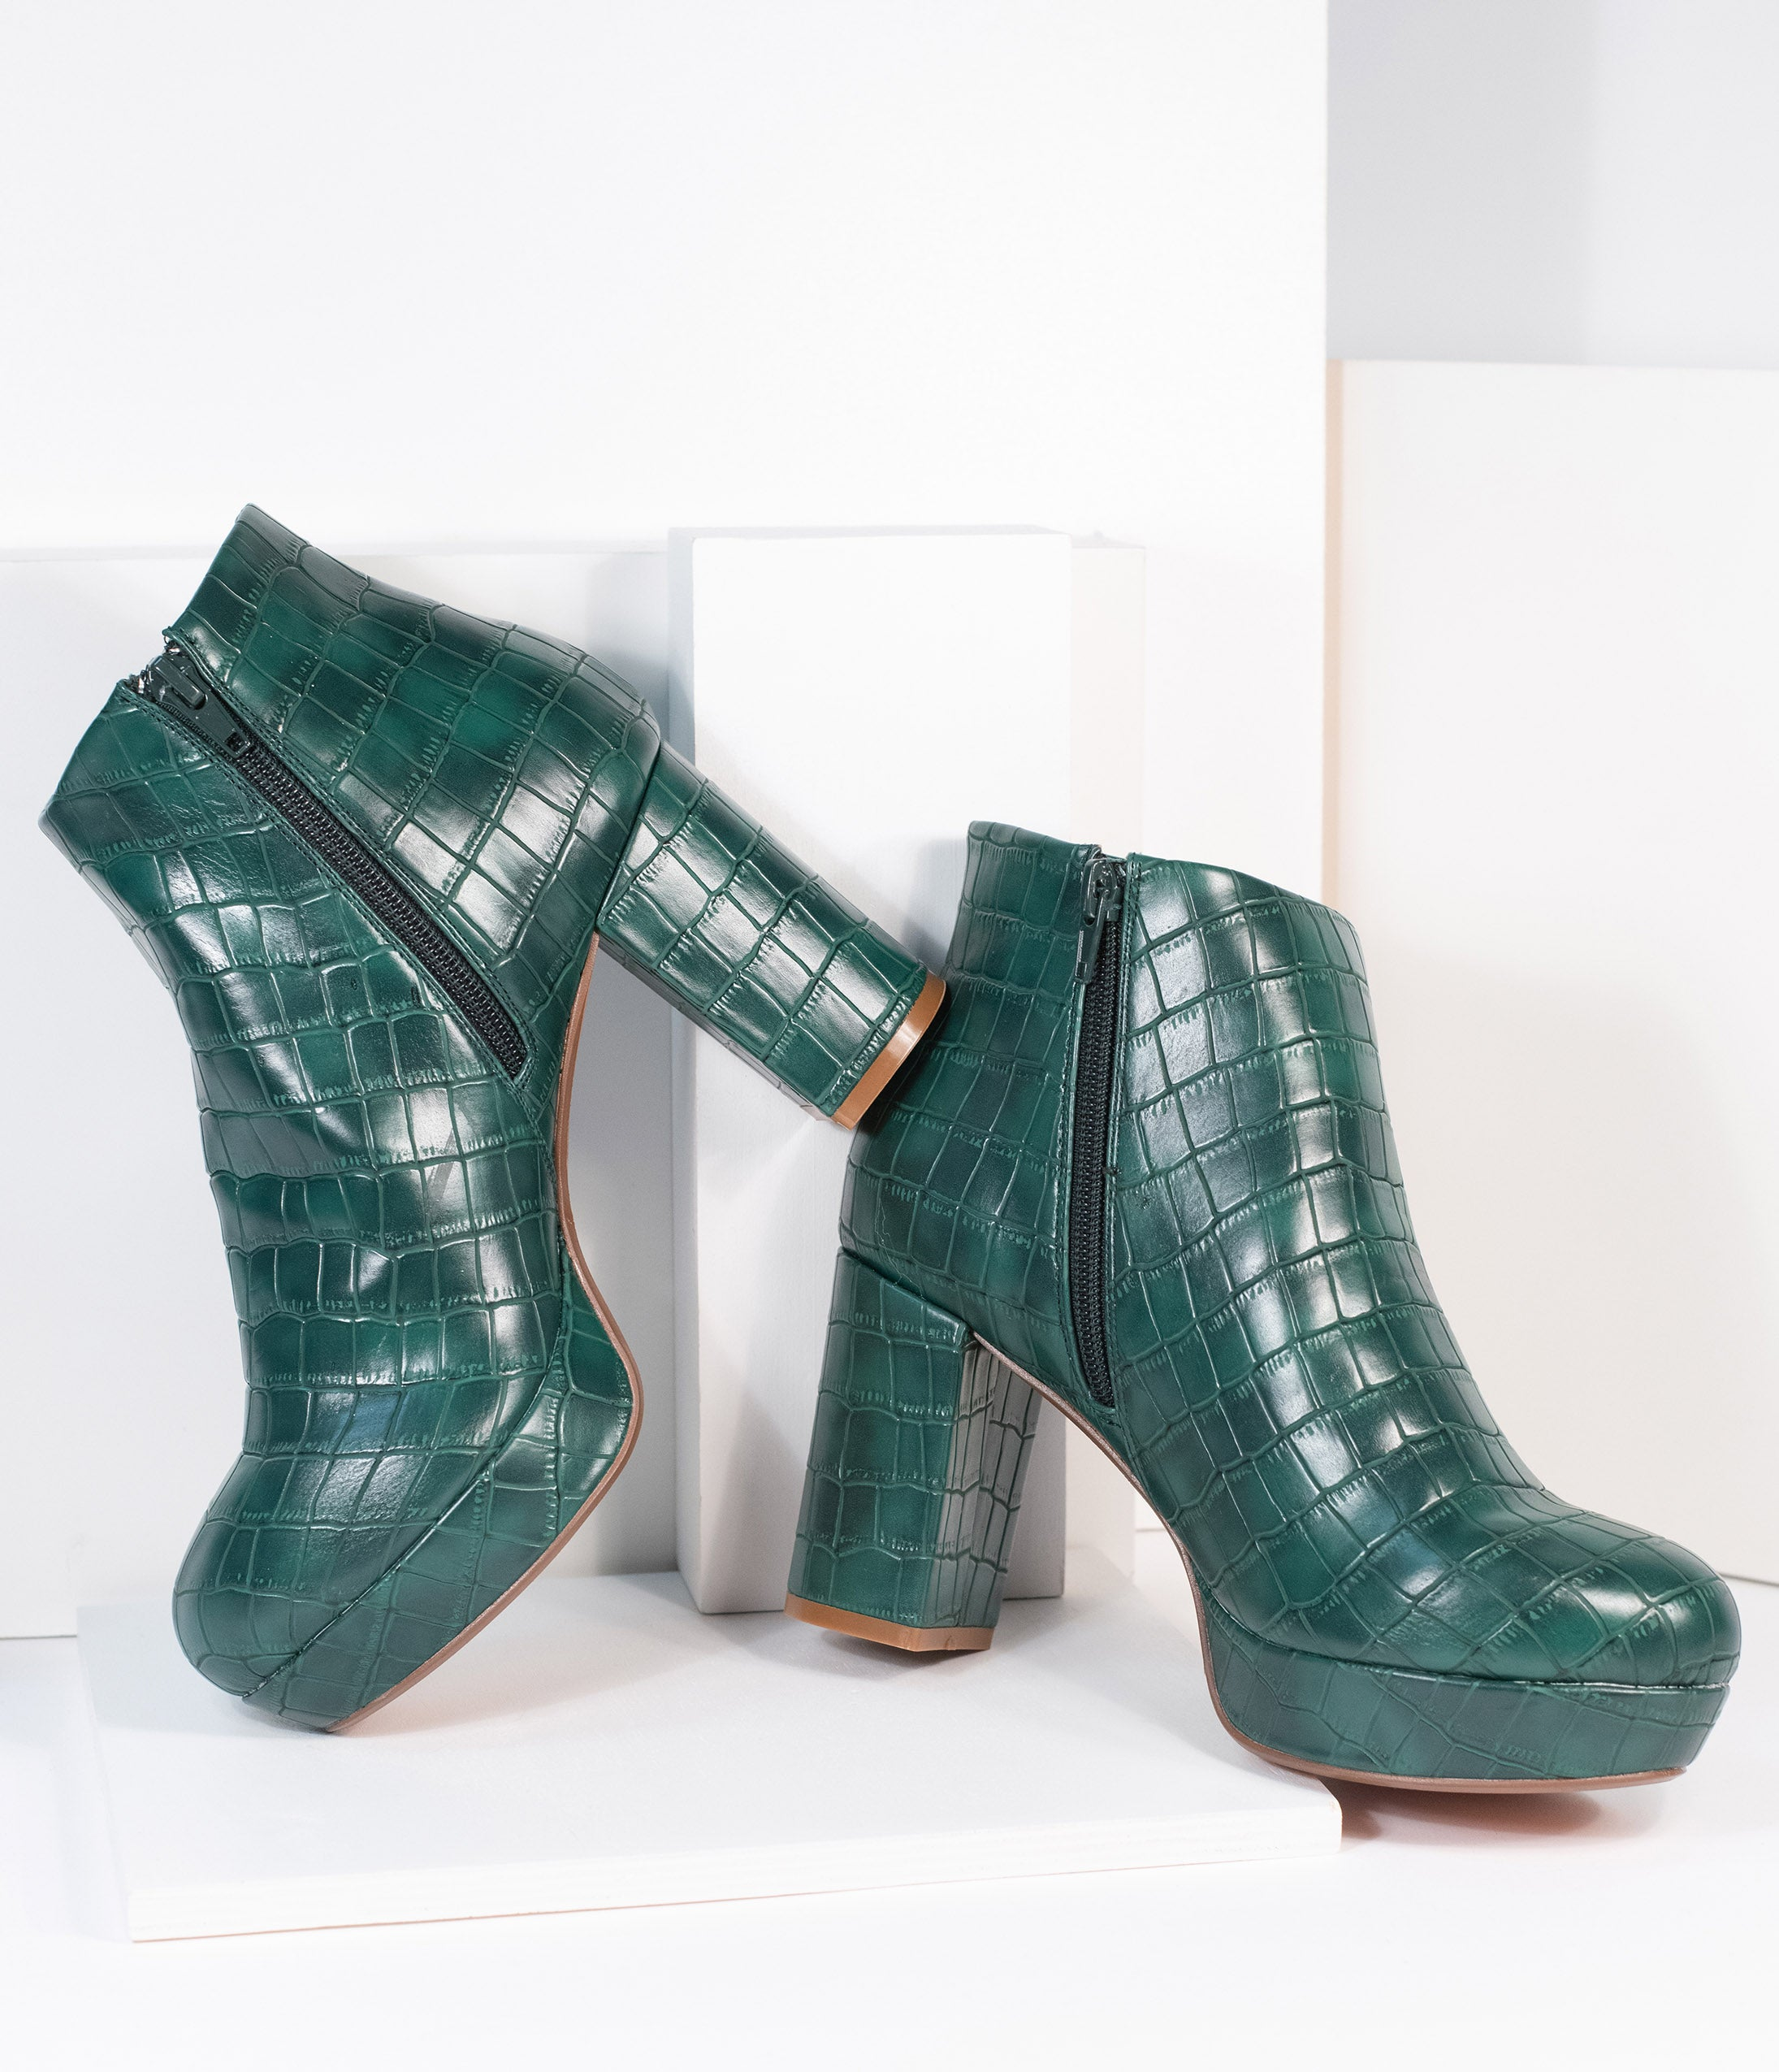 70s Shoes, Platforms, Boots, Heels | 1970s Shoes Chelsea Crew 1970S Green Crocodile Disco Booties $124.00 AT vintagedancer.com